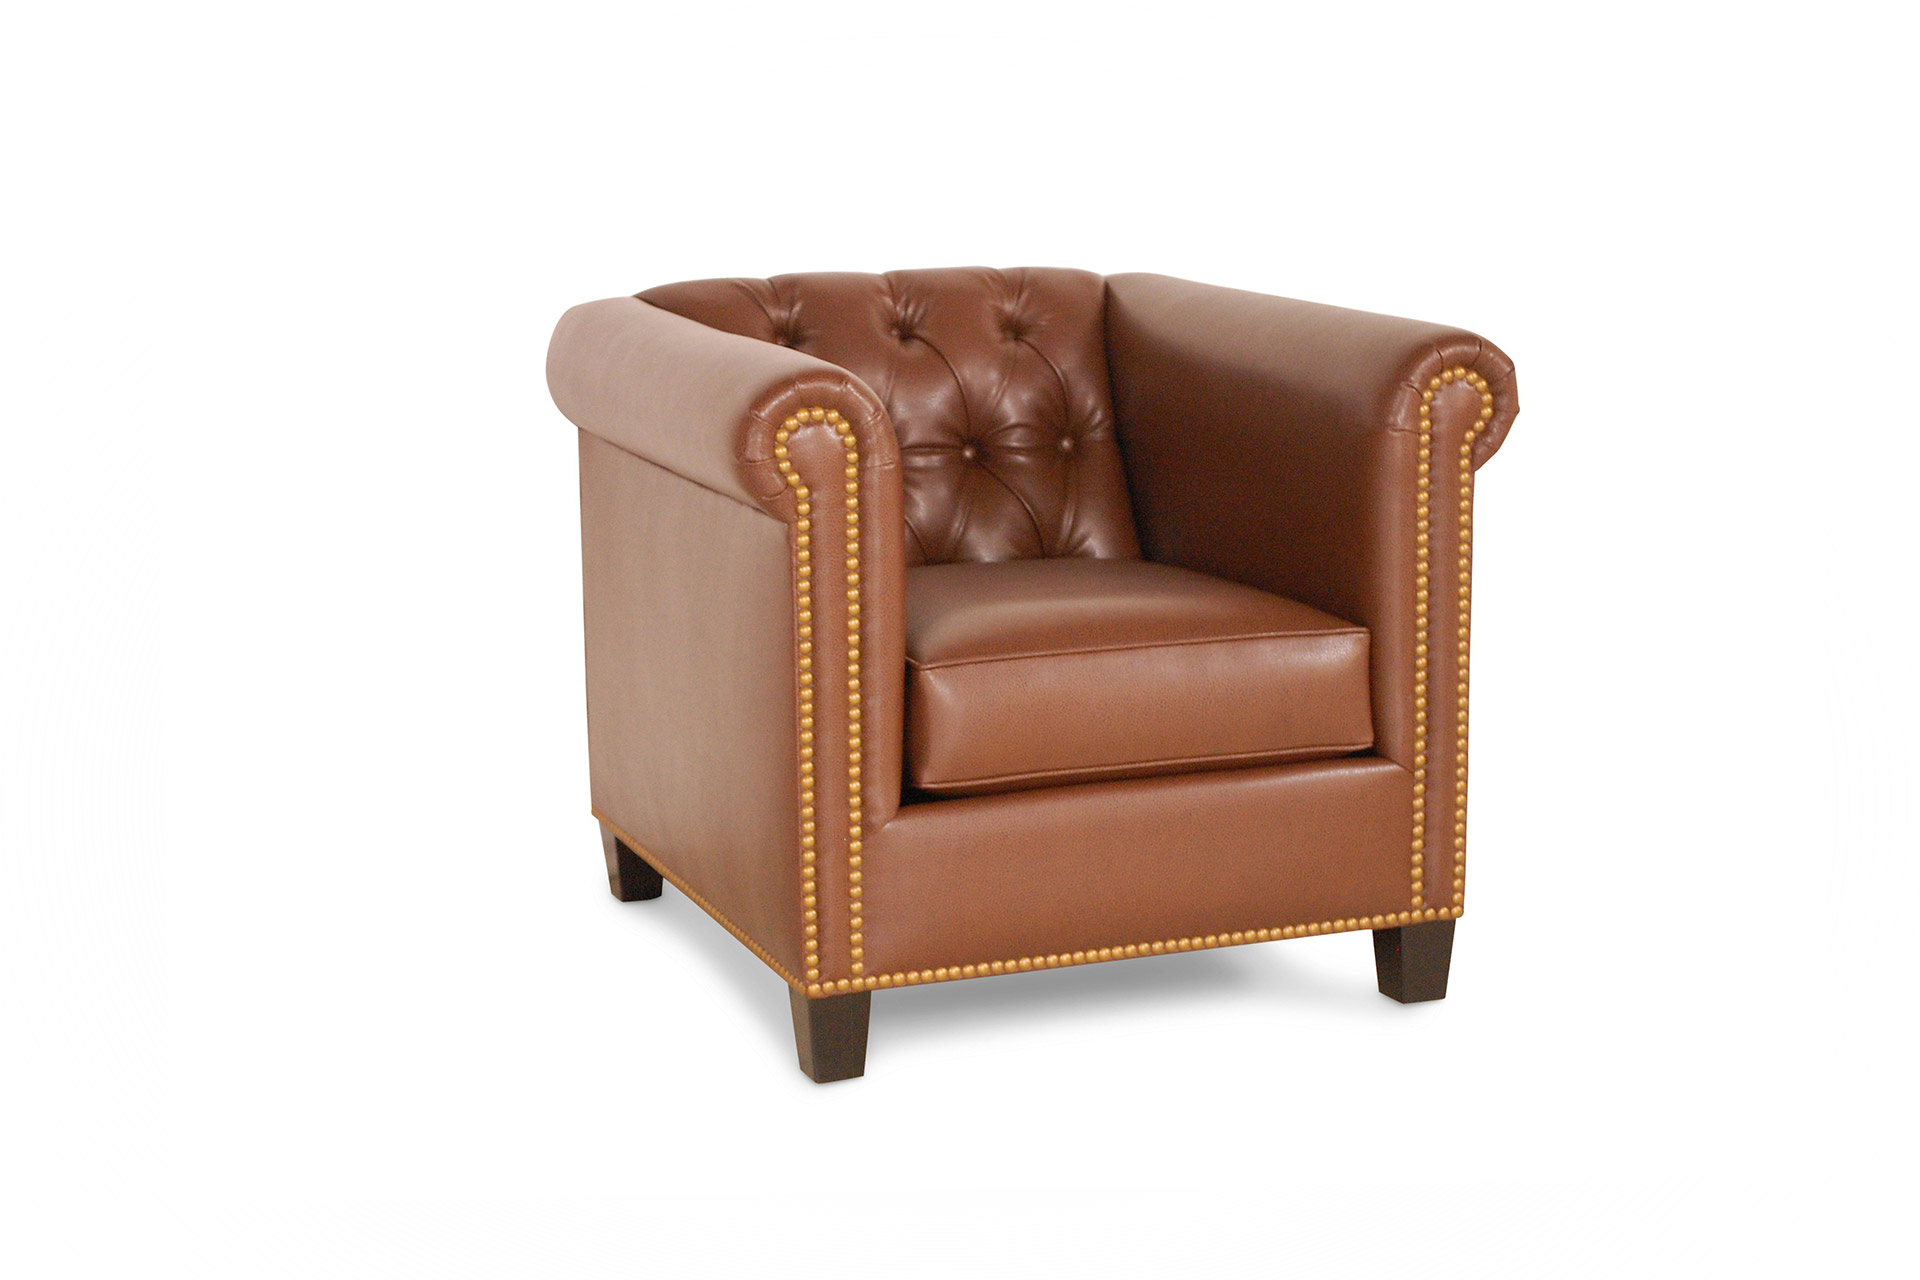 loft-and-manor-chesterfield-chair-3